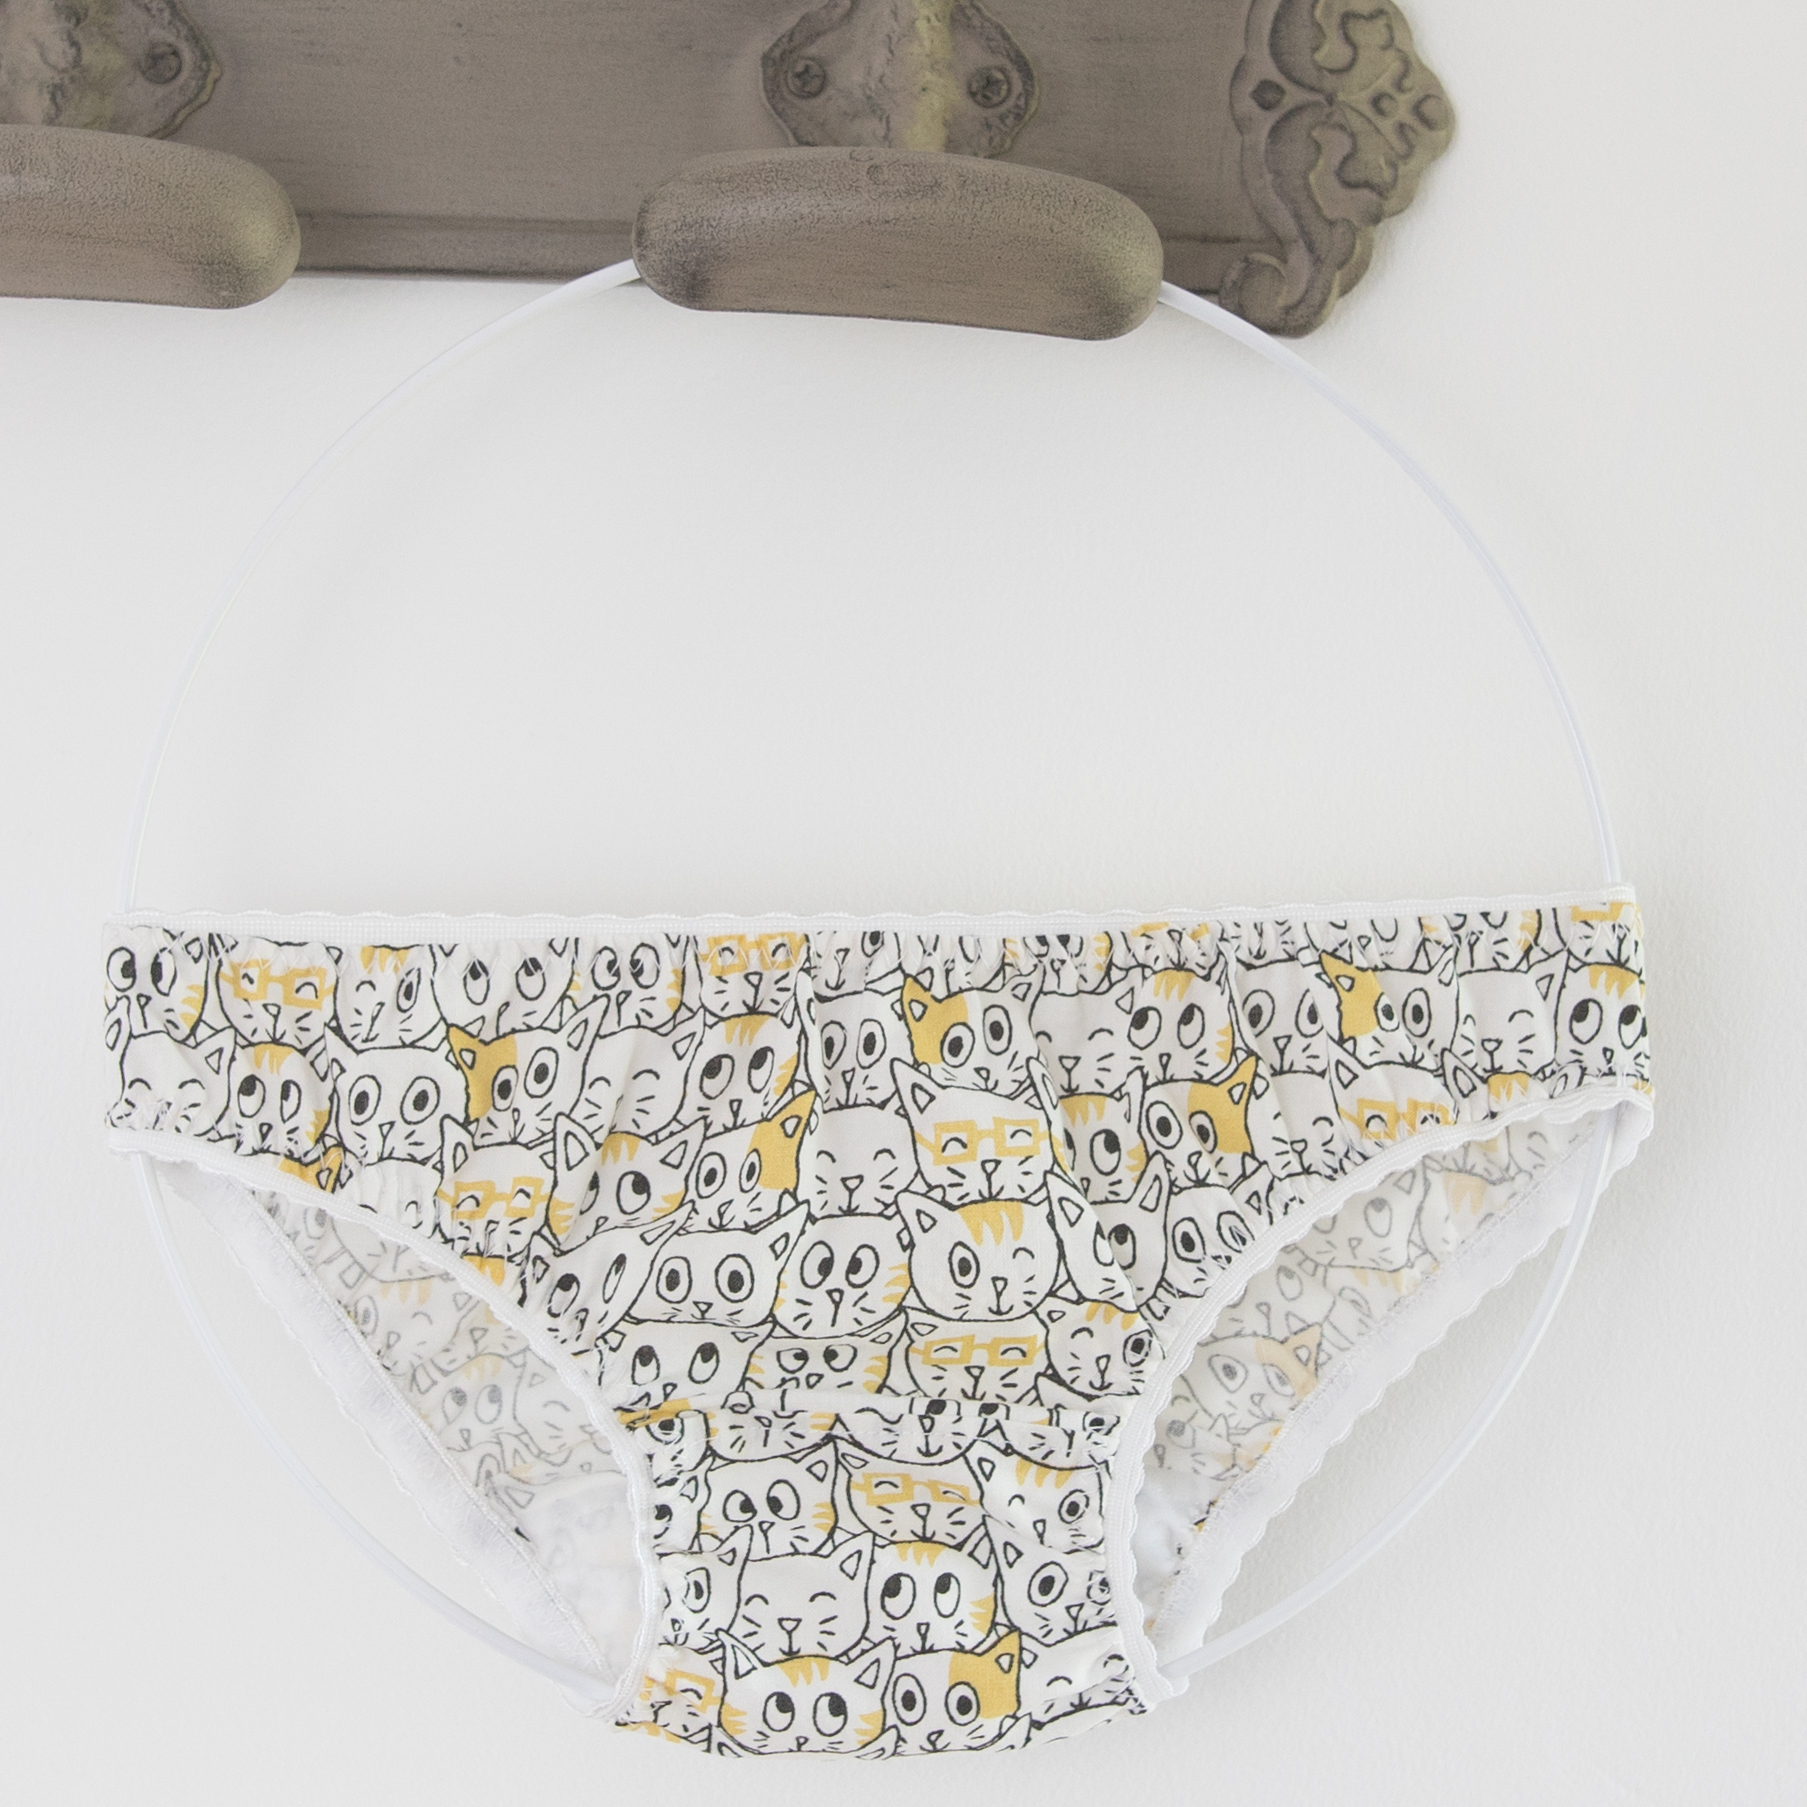 Petite culotte JoliPim' motif chat moutarde JoliPim'